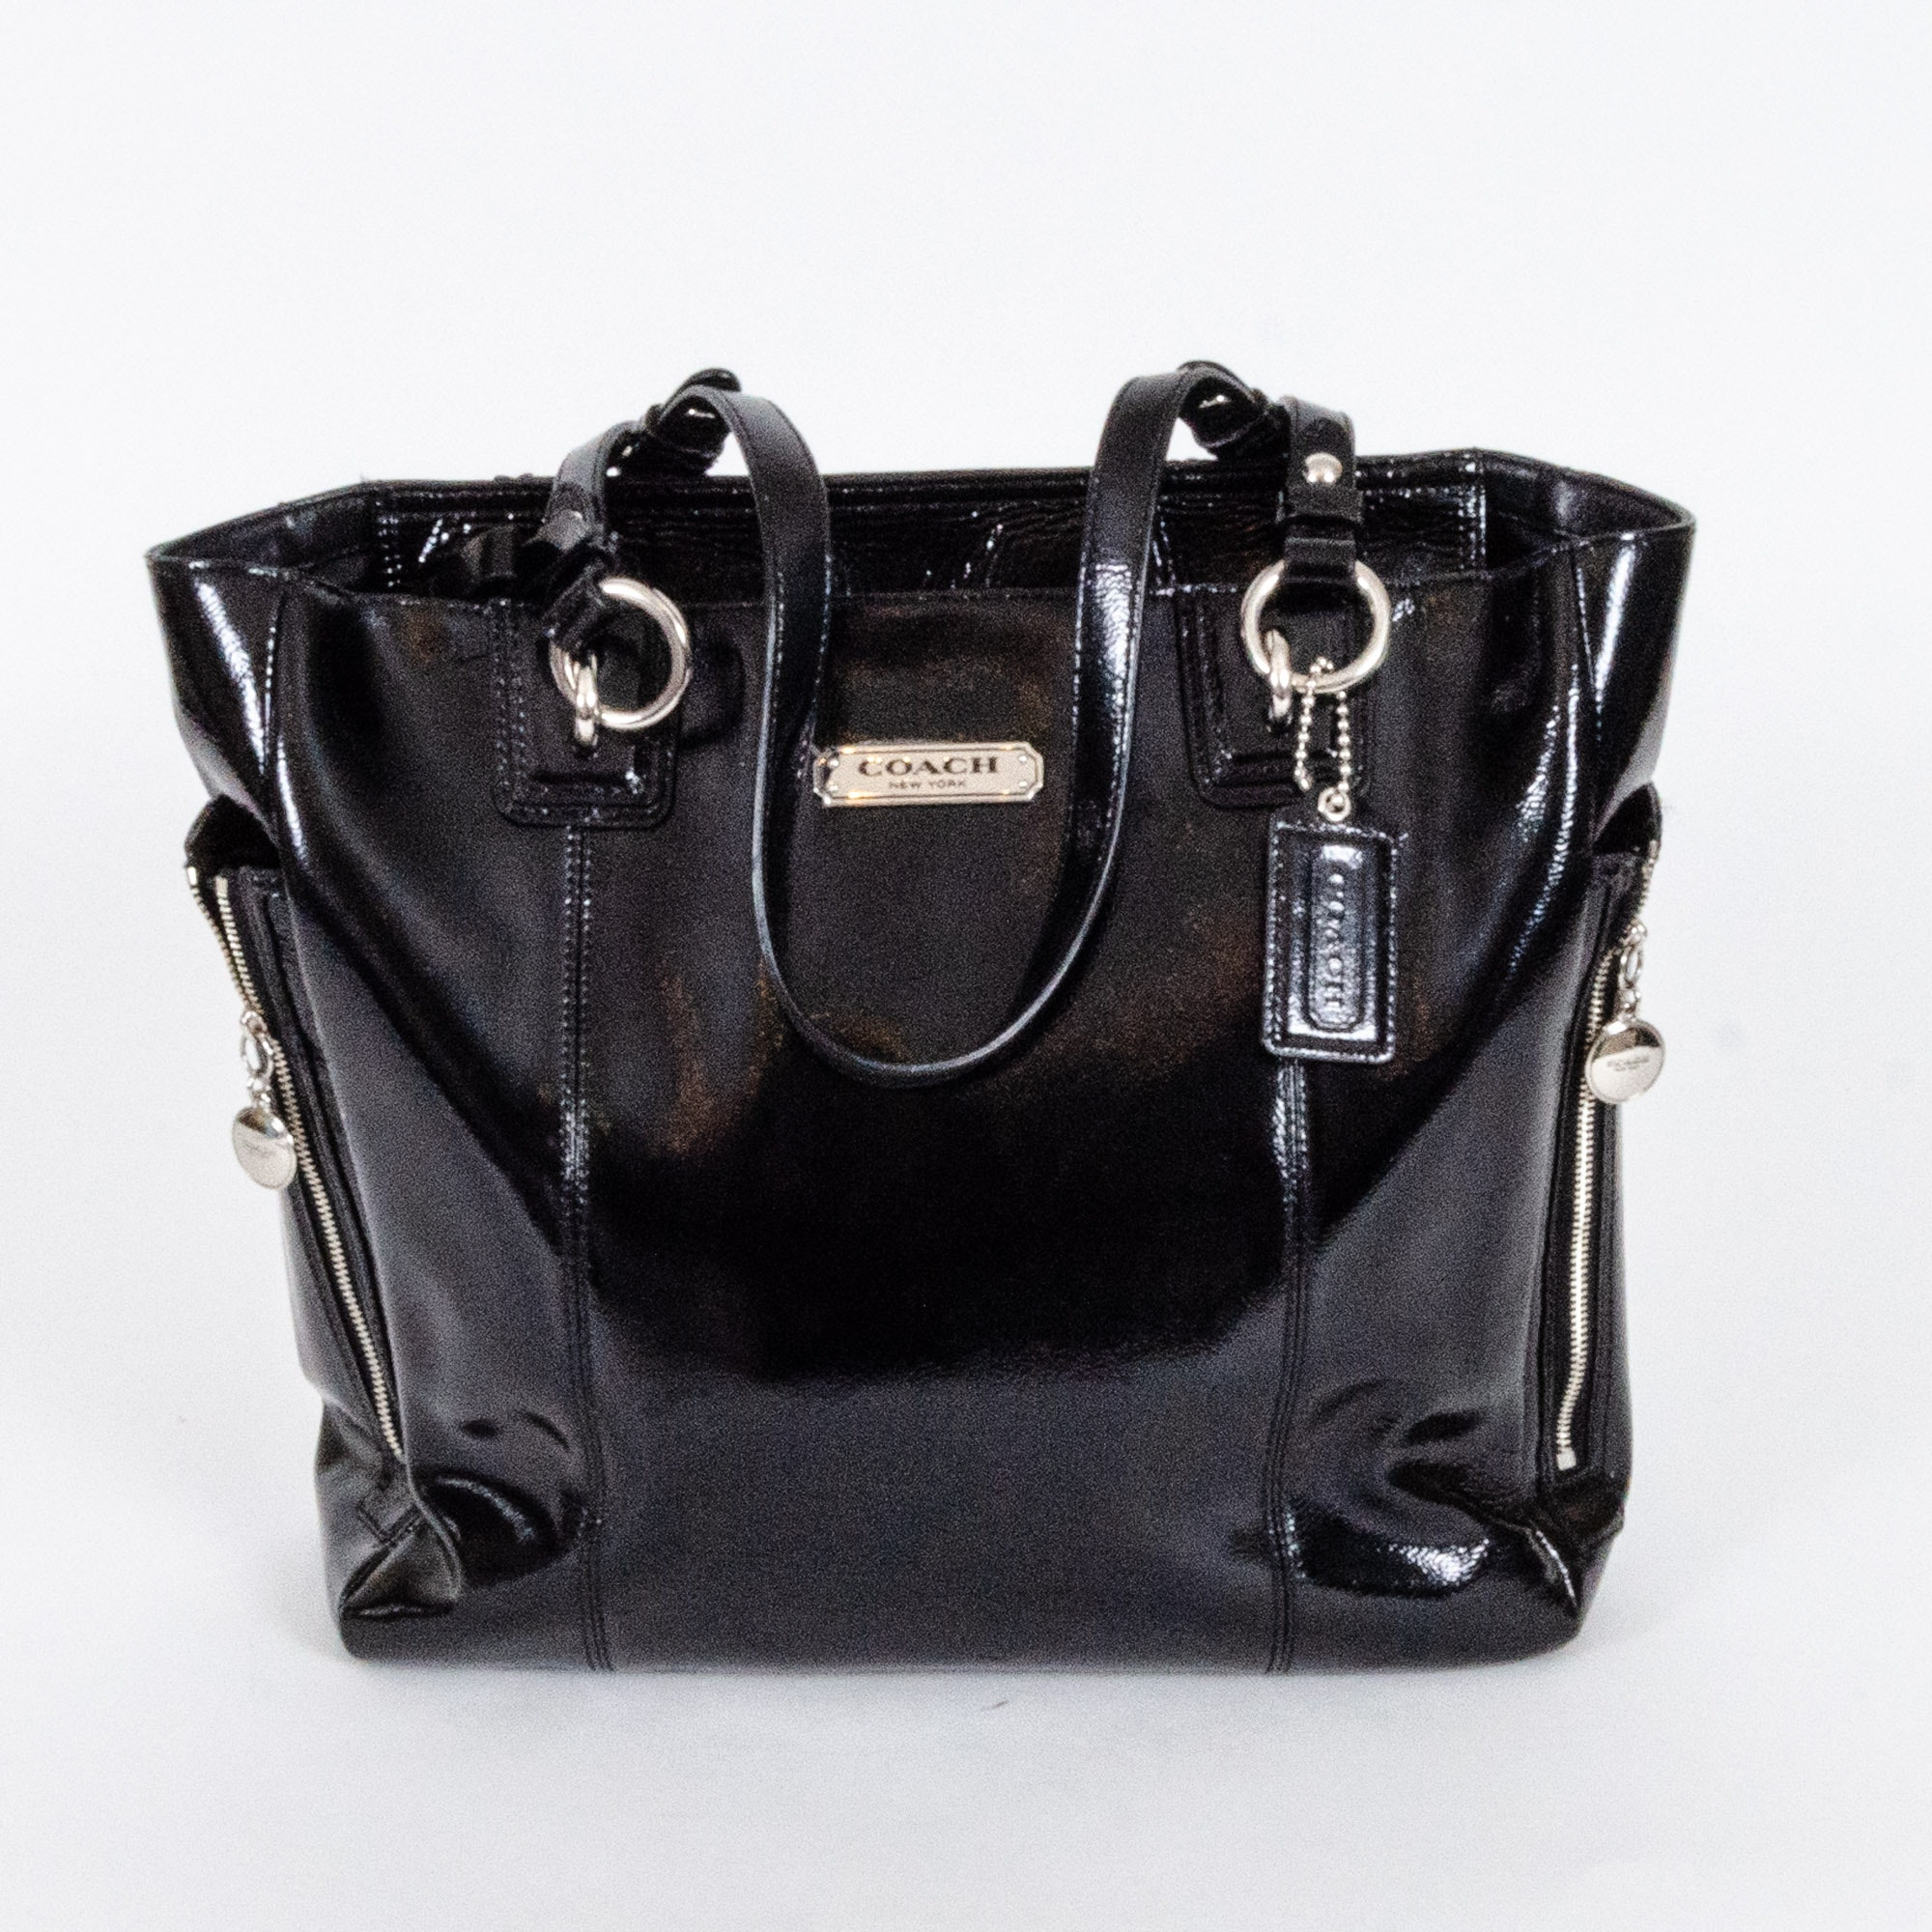 Coach Black Patent Leather Satchel